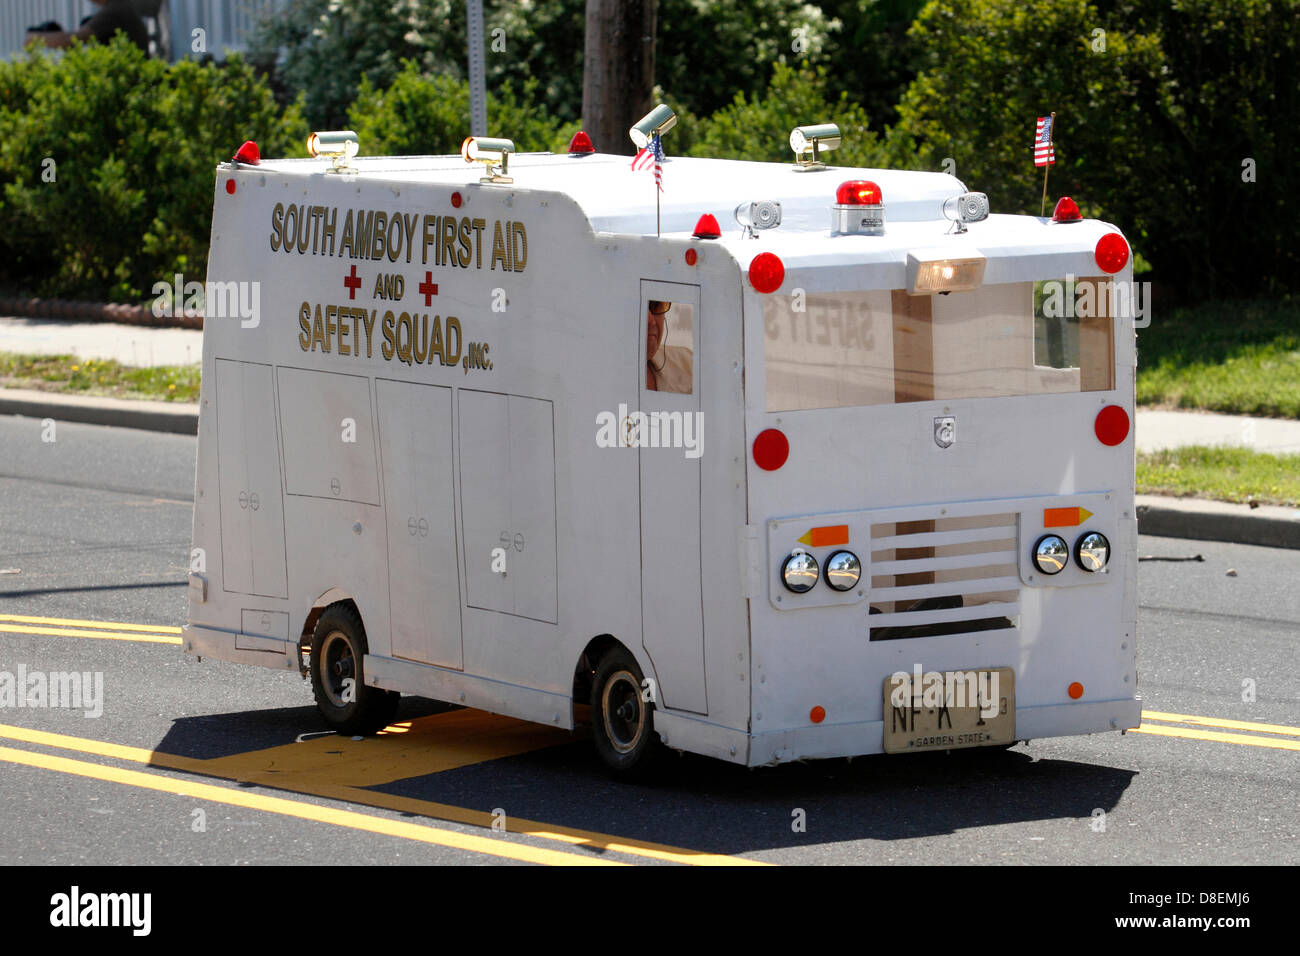 Go cart Ambulance in Memorial Day Parade in Sayreville, NJ representing the South Amboy First Aid Squad, a neighboring - Stock Image